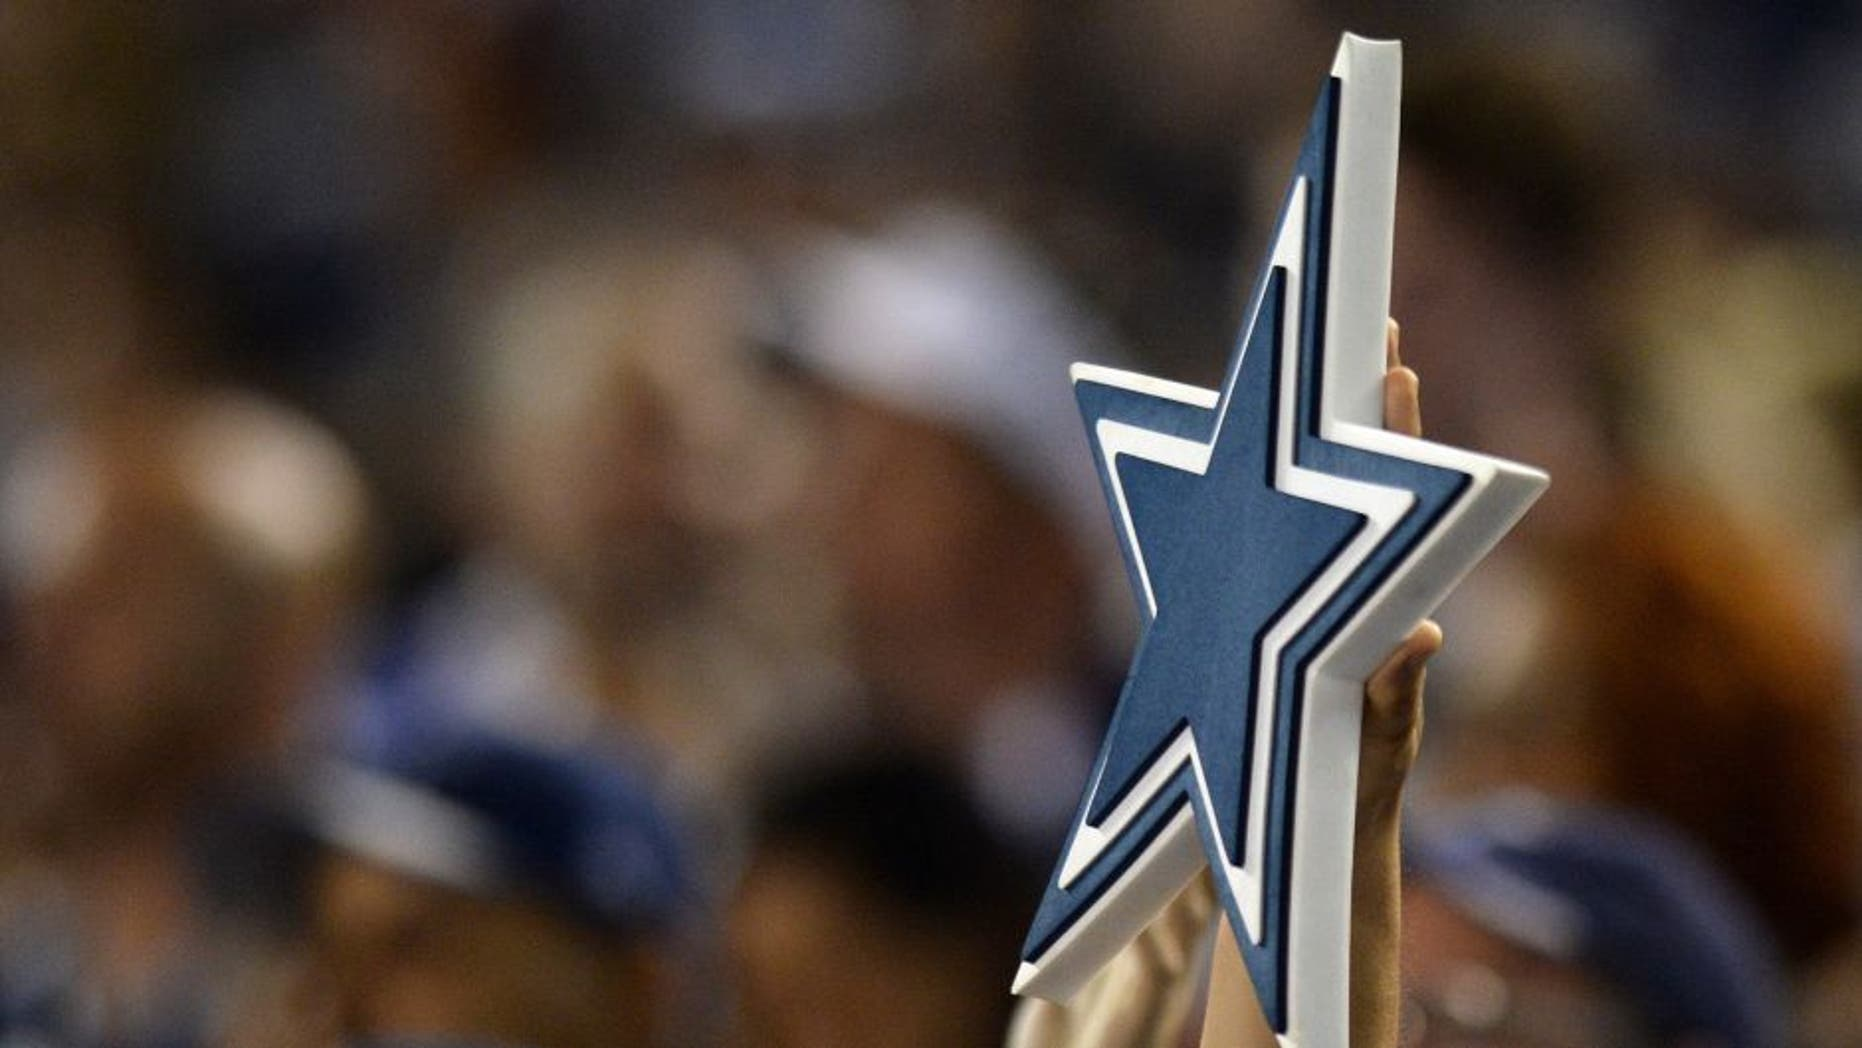 Aug 13, 2015; San Diego, CA, USA; A Dallas Cowboys fan hold up their logo during the third quarter against the San Diego Chargers in a preseason NFL football game at Qualcomm Stadium. Mandatory Credit: Jake Roth-USA TODAY Sports